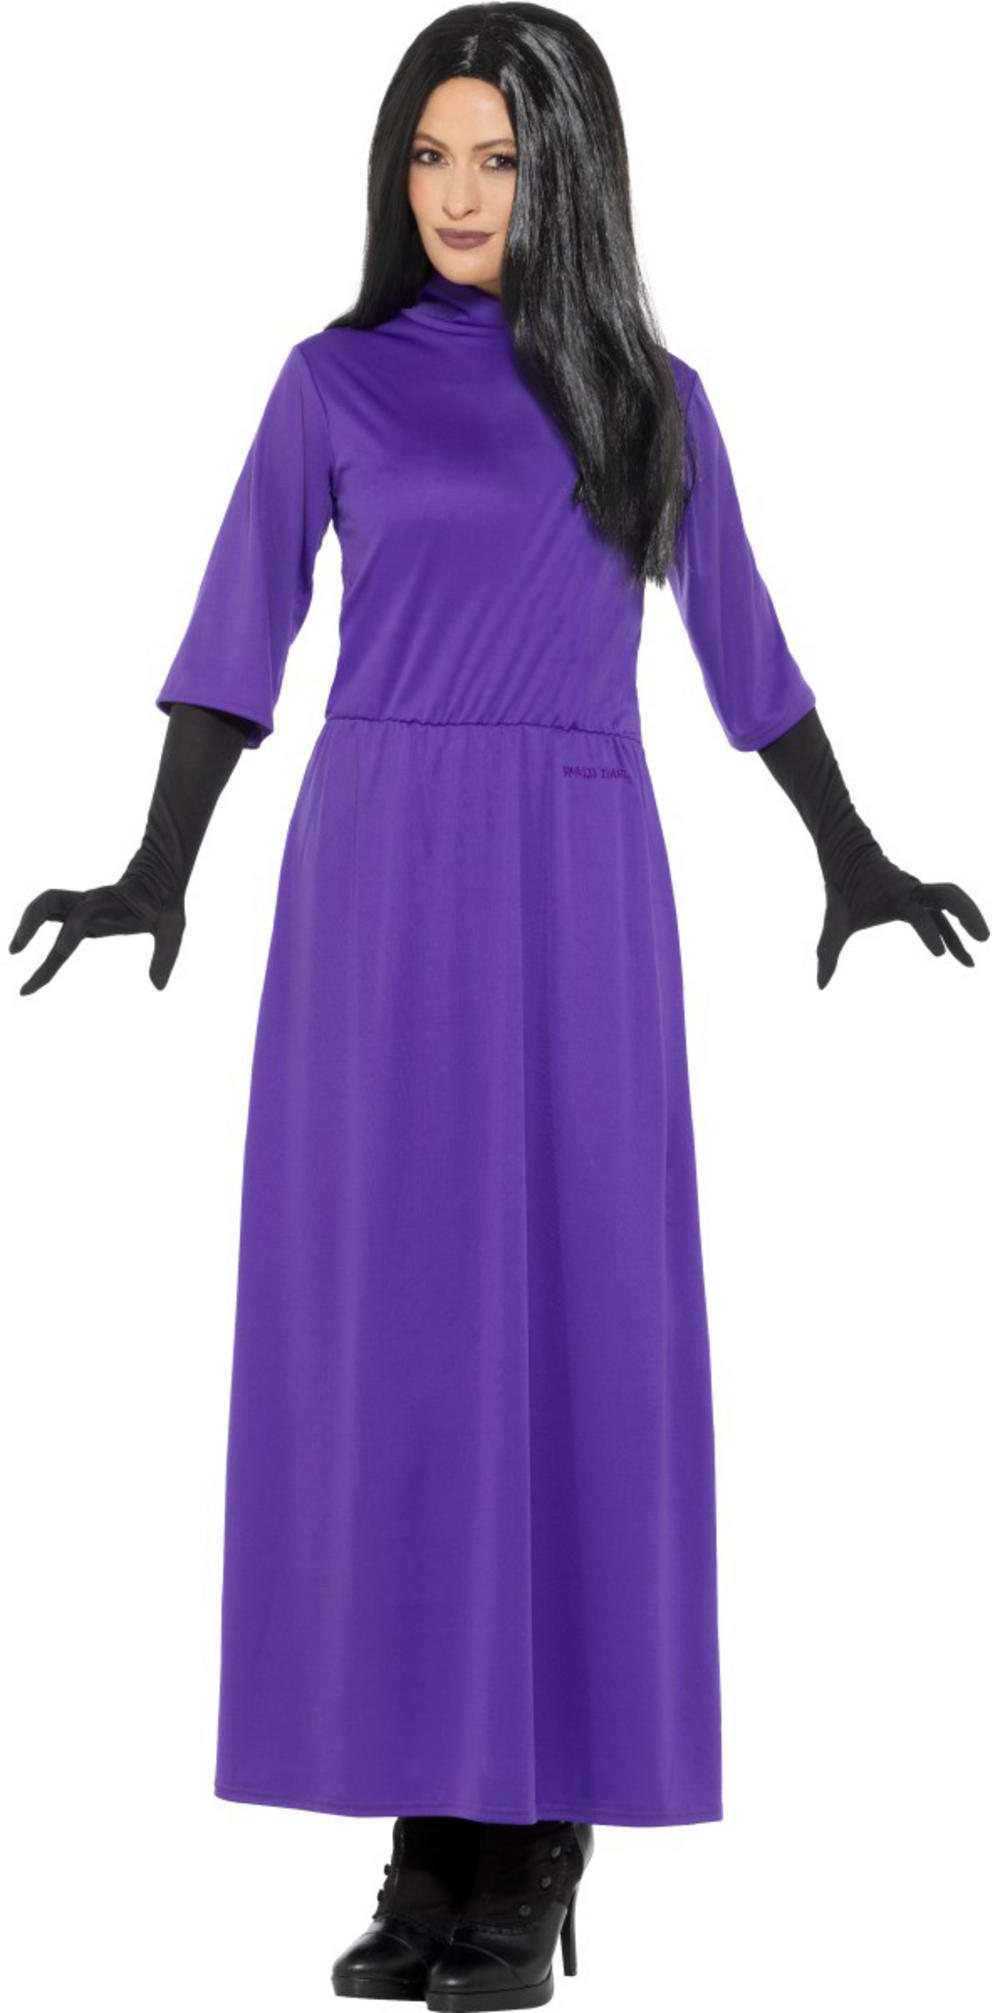 Roald Dahl The Witches Ladies Costume